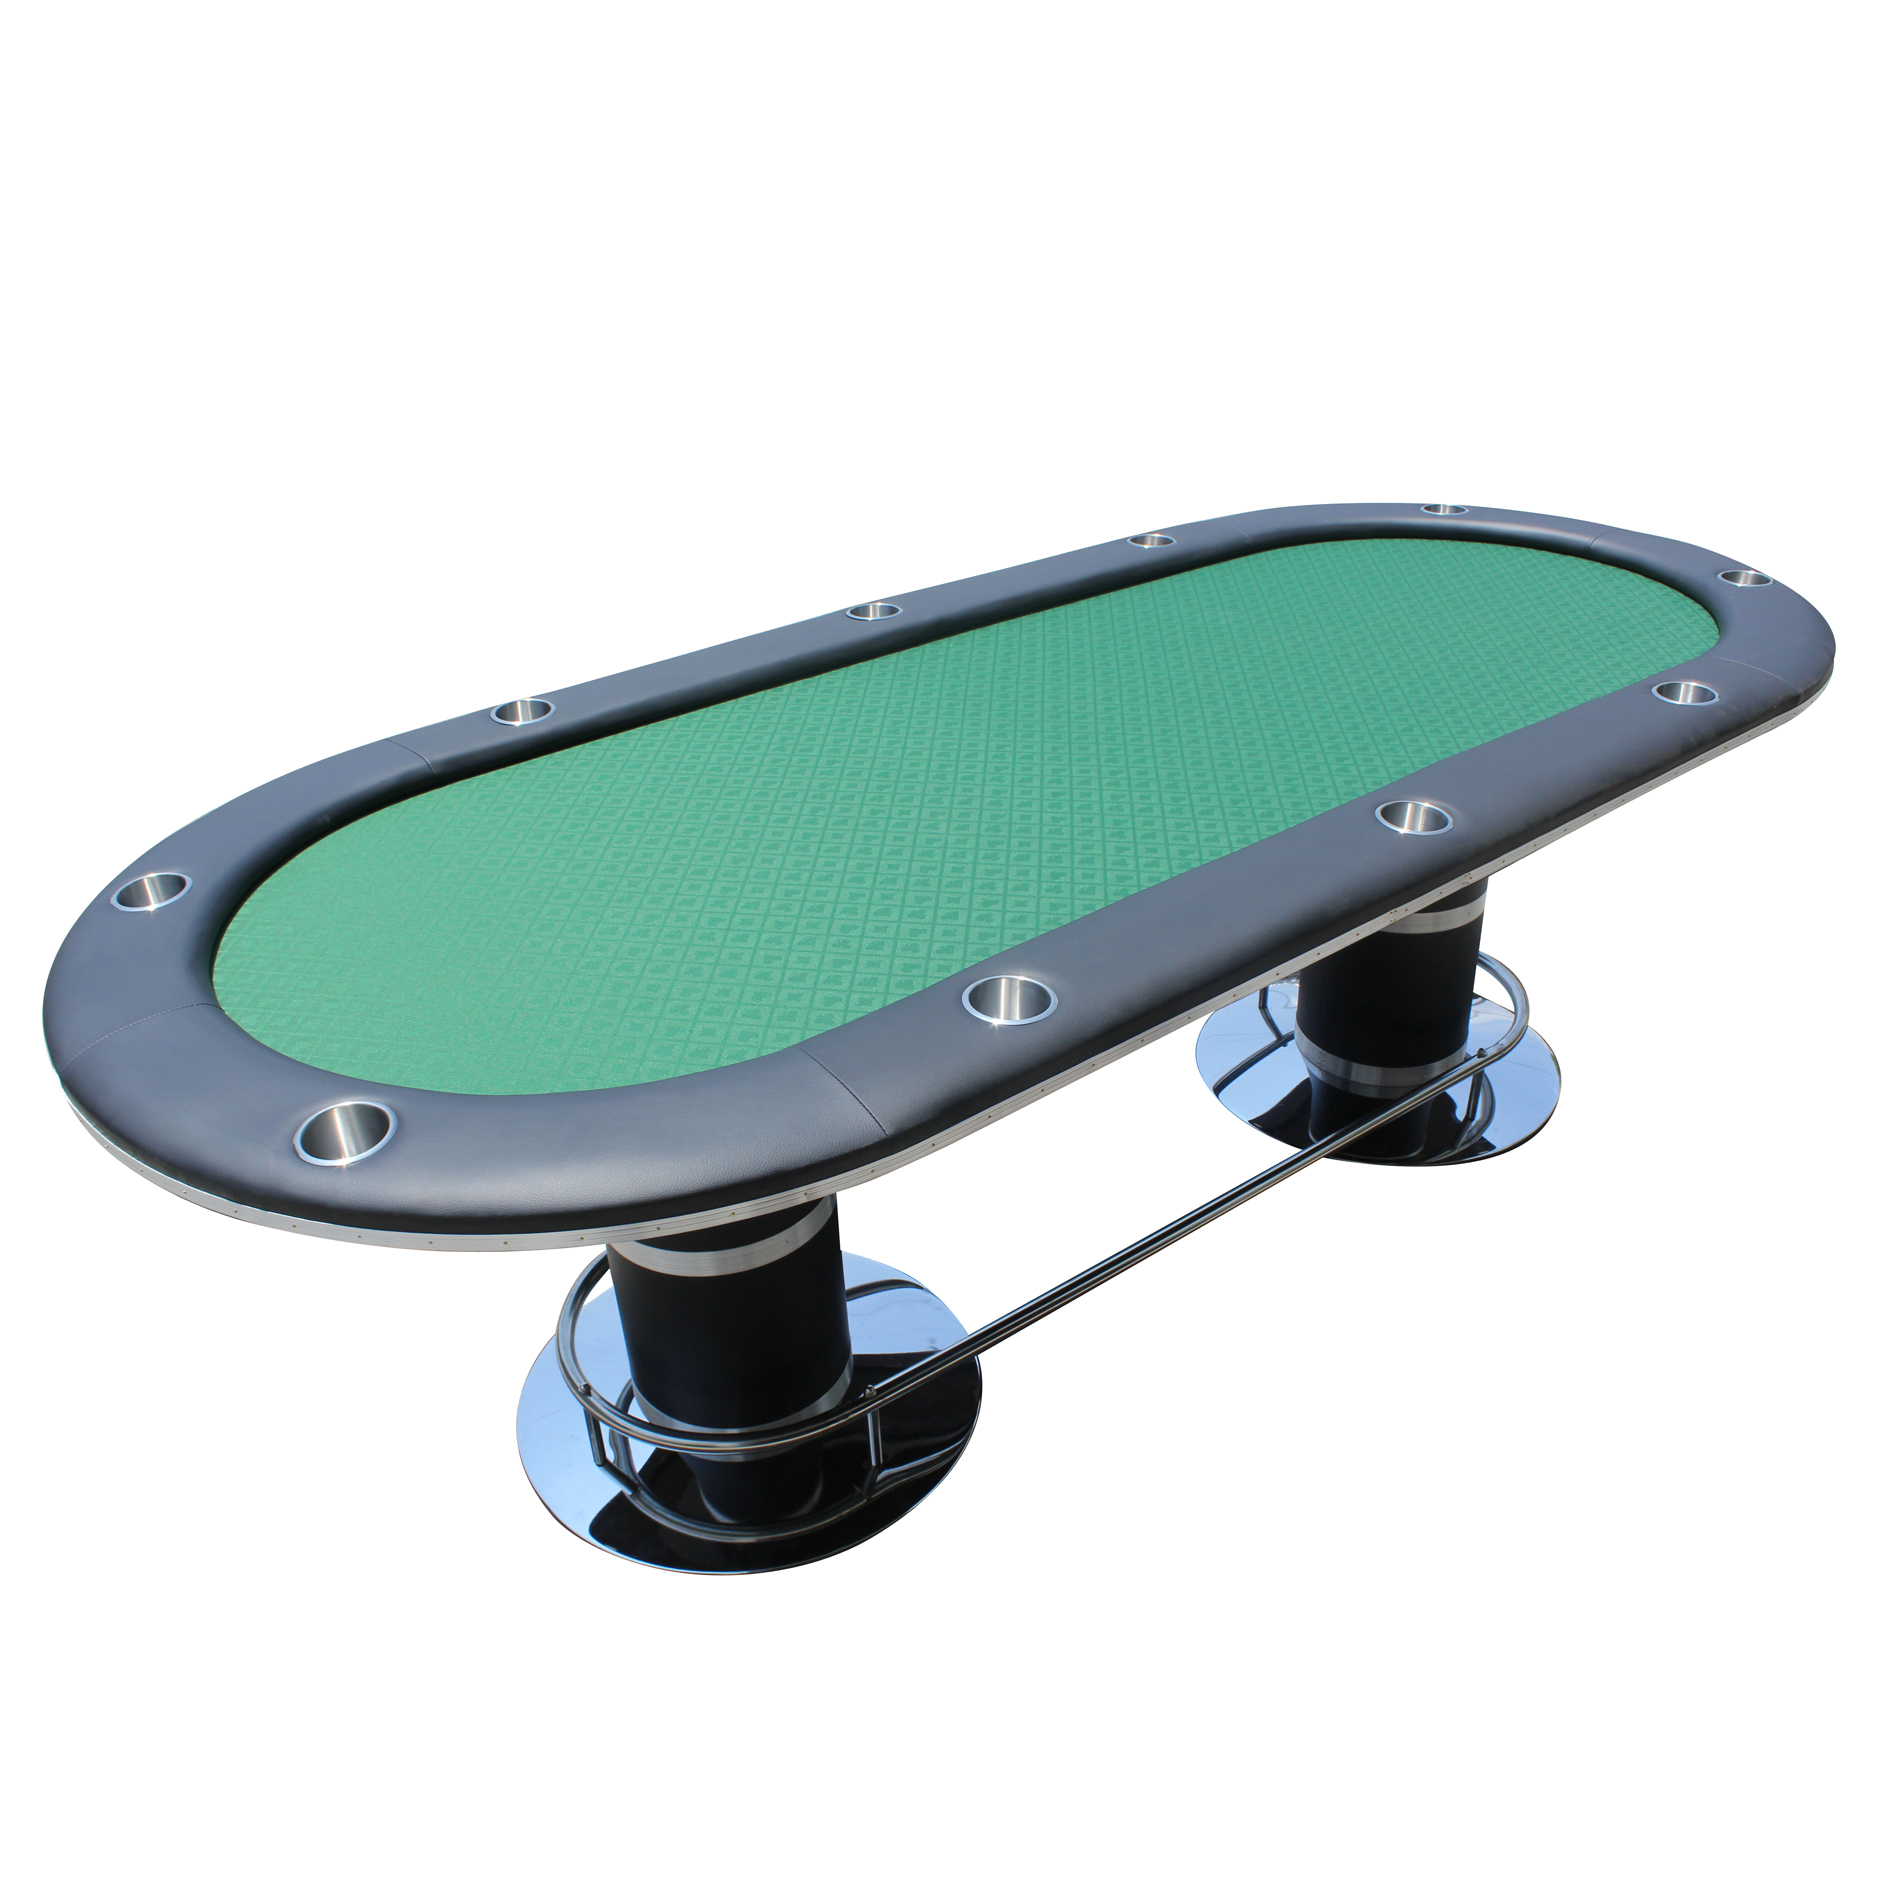 IDS POKER Poker Table For 10 Players Oval 96 X 43 Inch Cup Holders Green  High